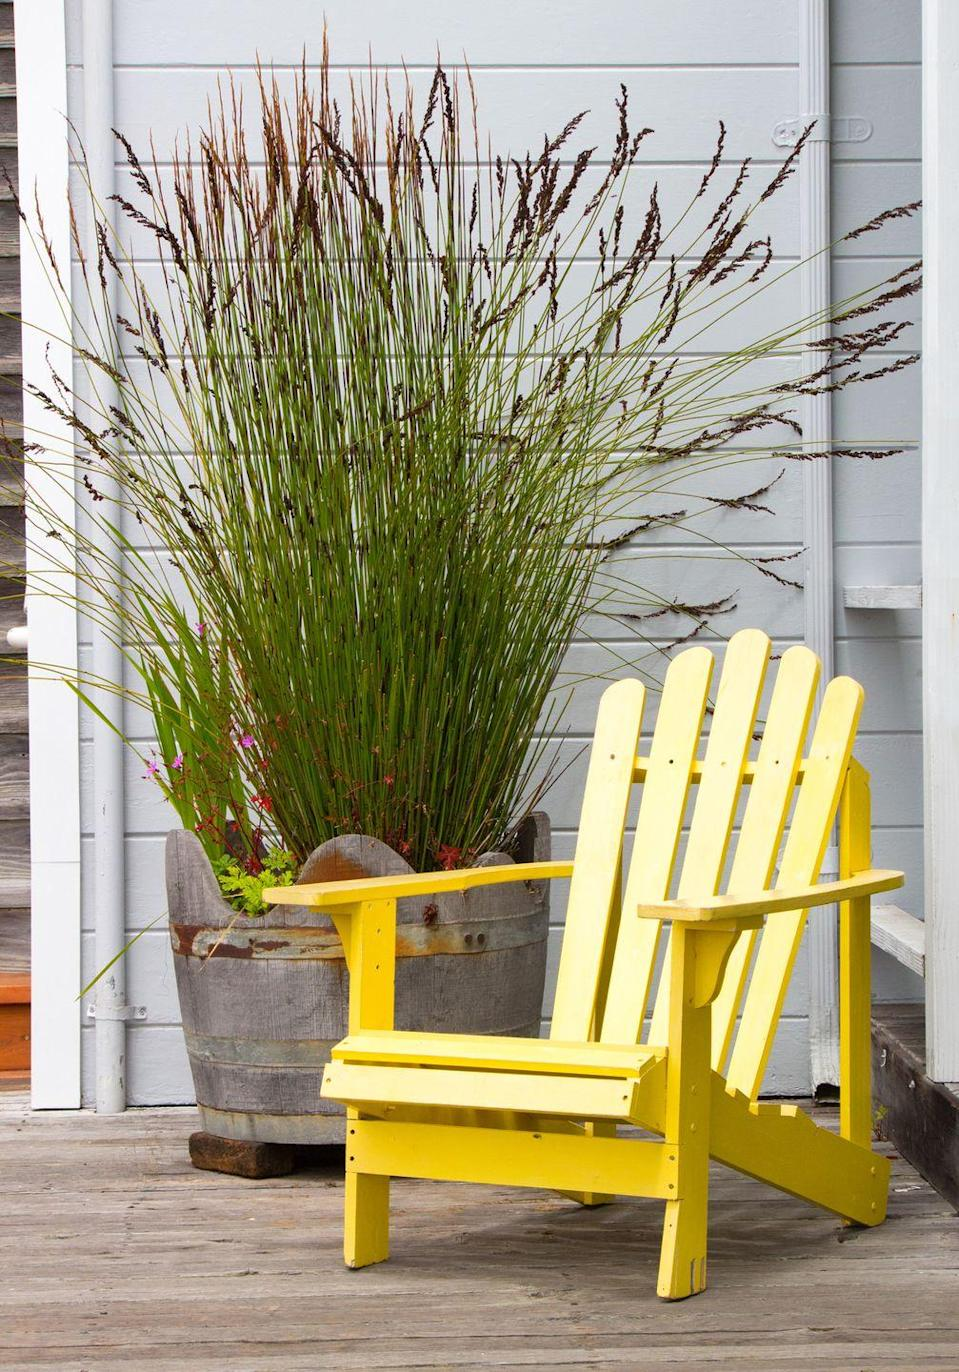 <p>With warmer weather on the horizon, it's time to get your outdoor furniture ready for lounging. To do this, add a squirt of dish detergent to a bowl of warm water, then wipe down tables and chairs. Spray them down with water and then let air dry.</p>